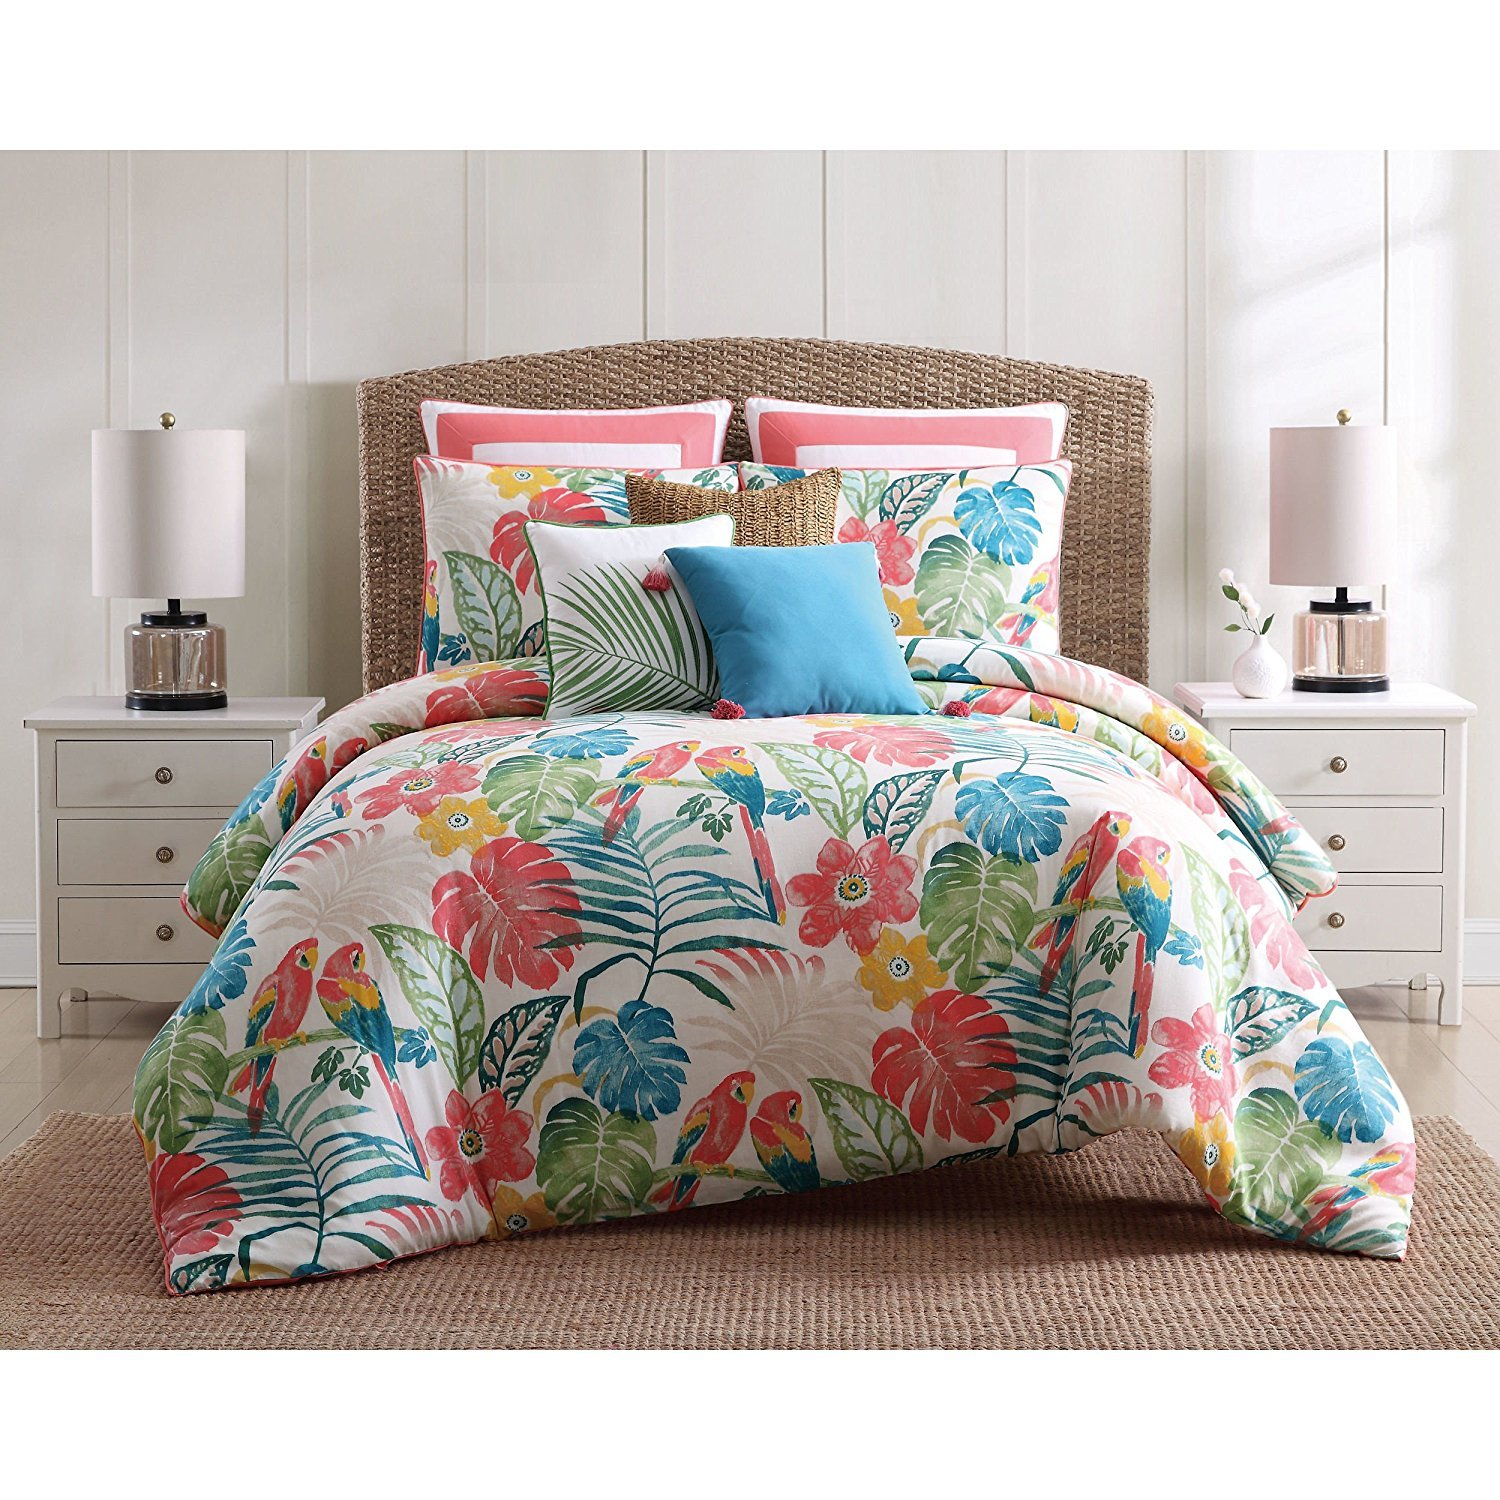 Image of: Theme Colorful Bedding Sets